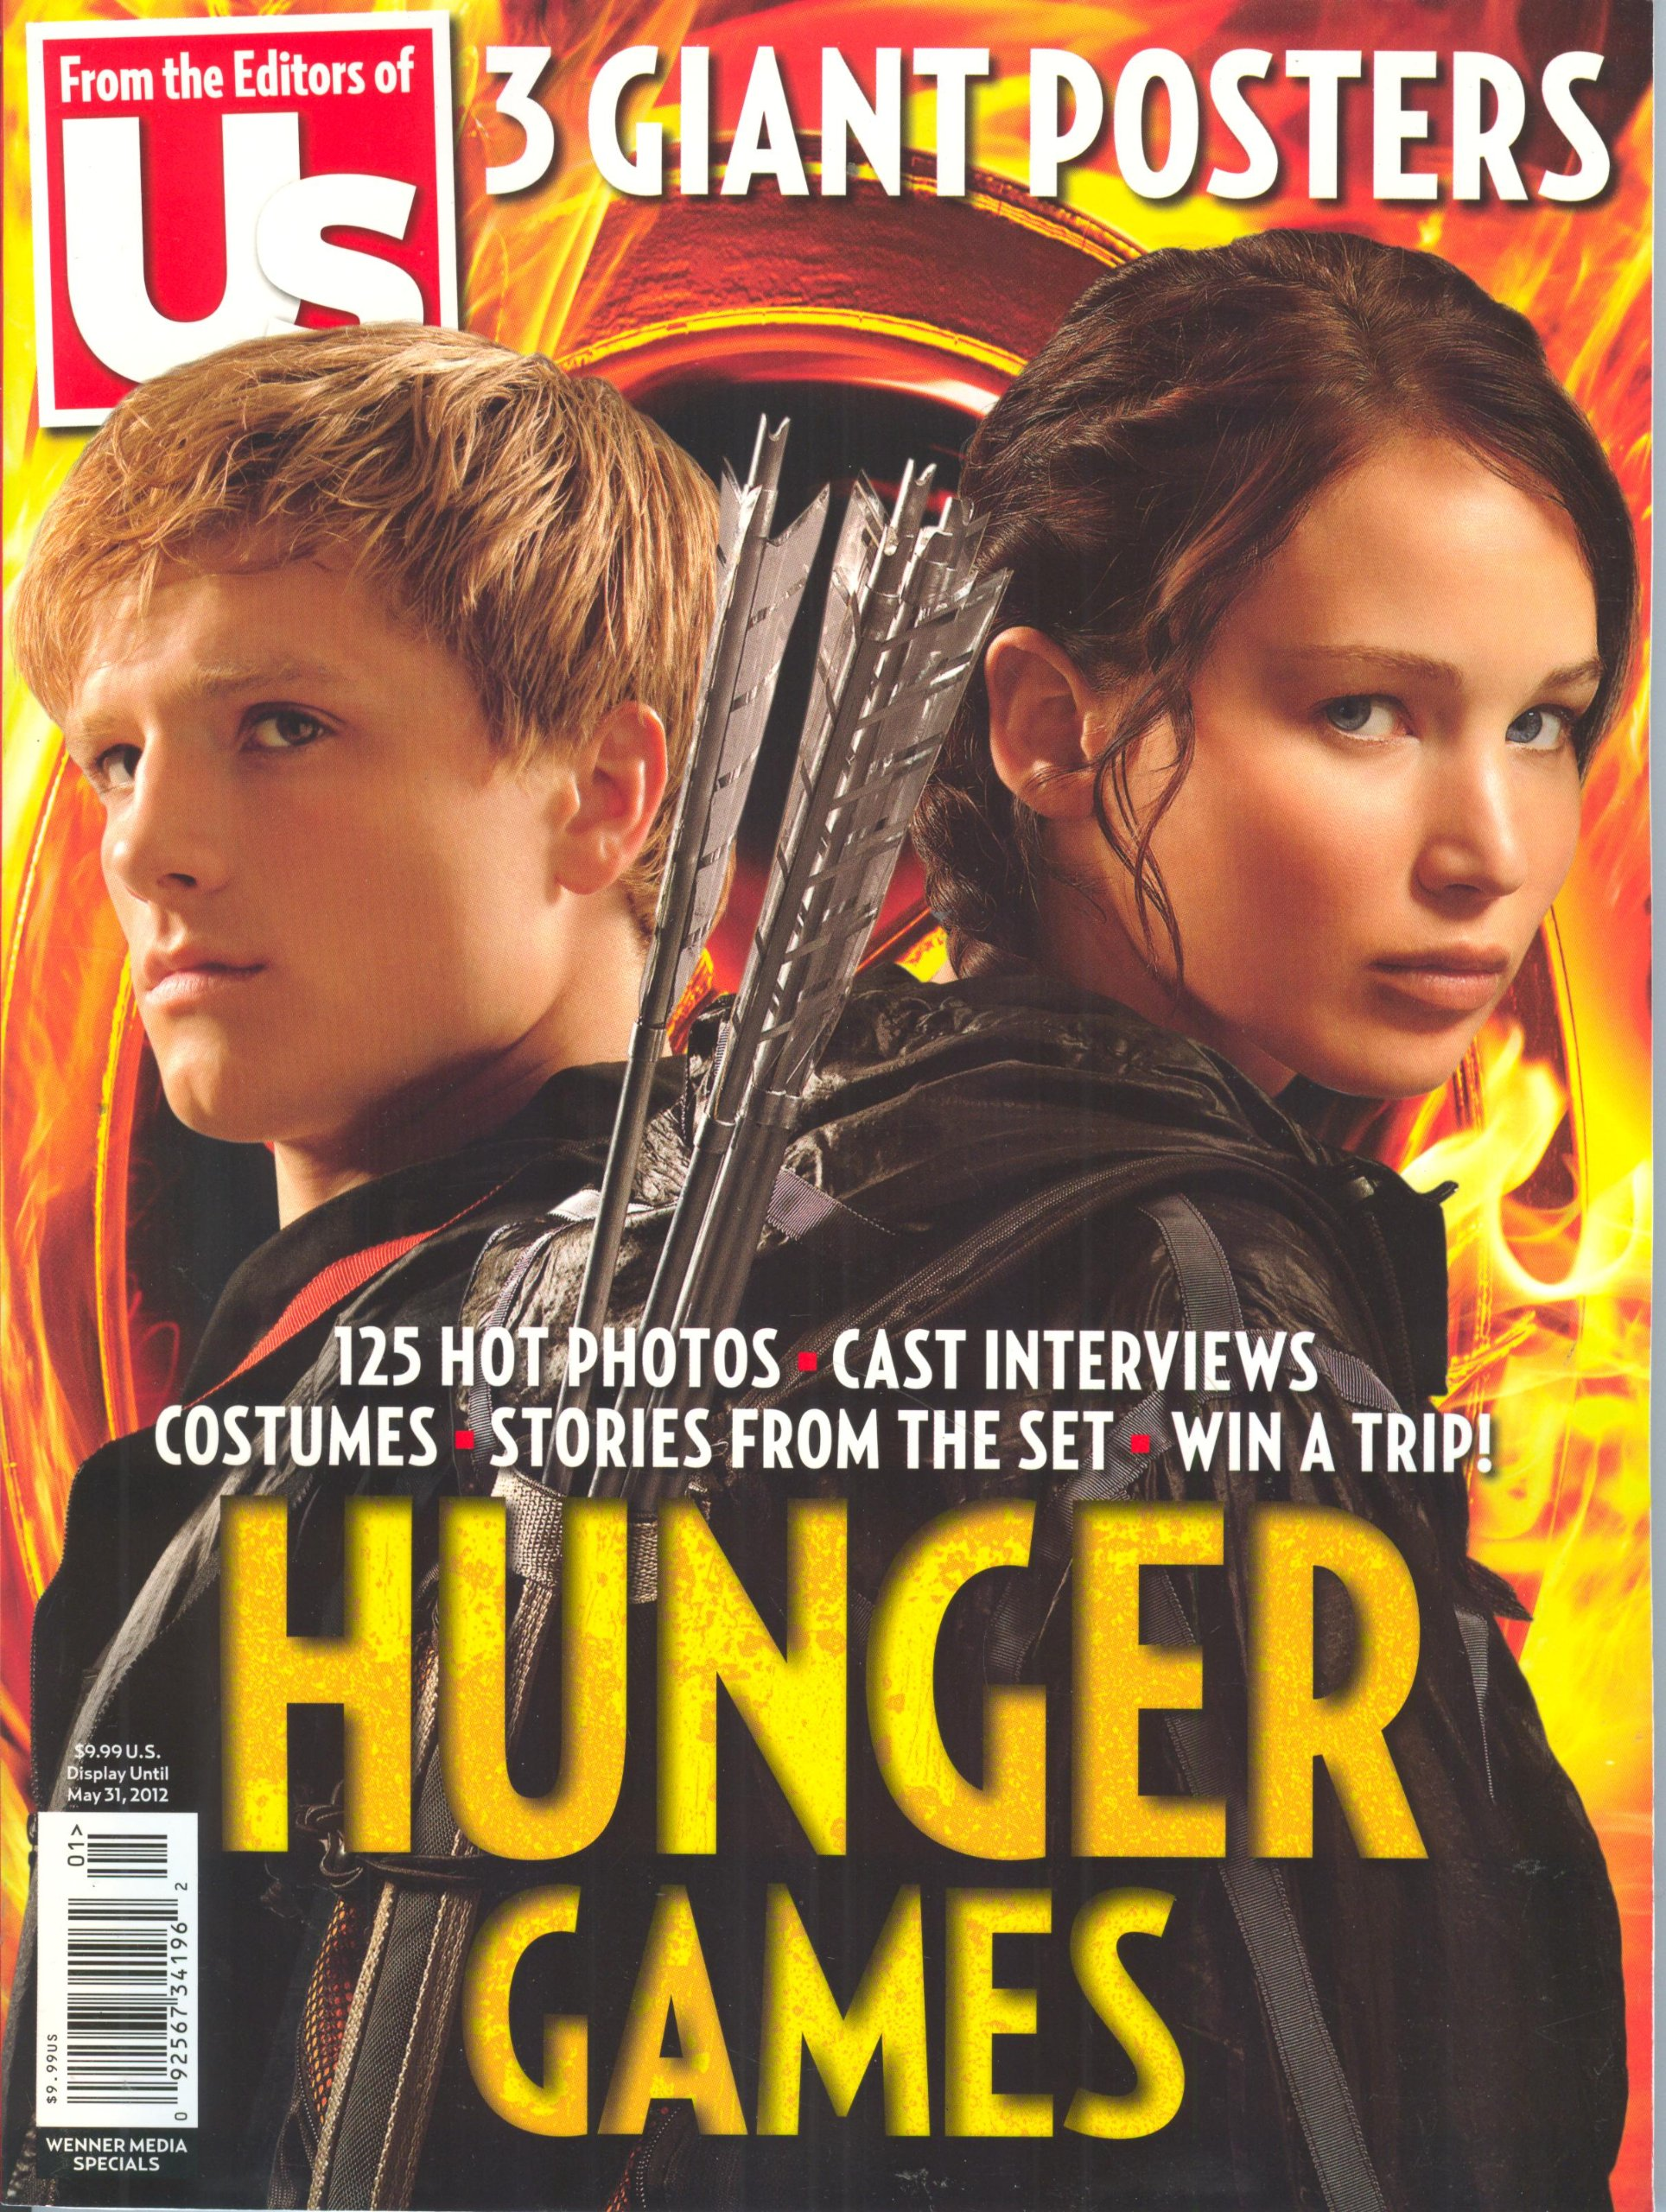 Us Magazine, Special The Hunger Games 2012 Collector's Edition. 125 Hot Photos, 3 Giant Posters, Us Magazine, The Hunger Games 2012 Collector's Edition. 125 Hot Photos, 3 Giant Posters